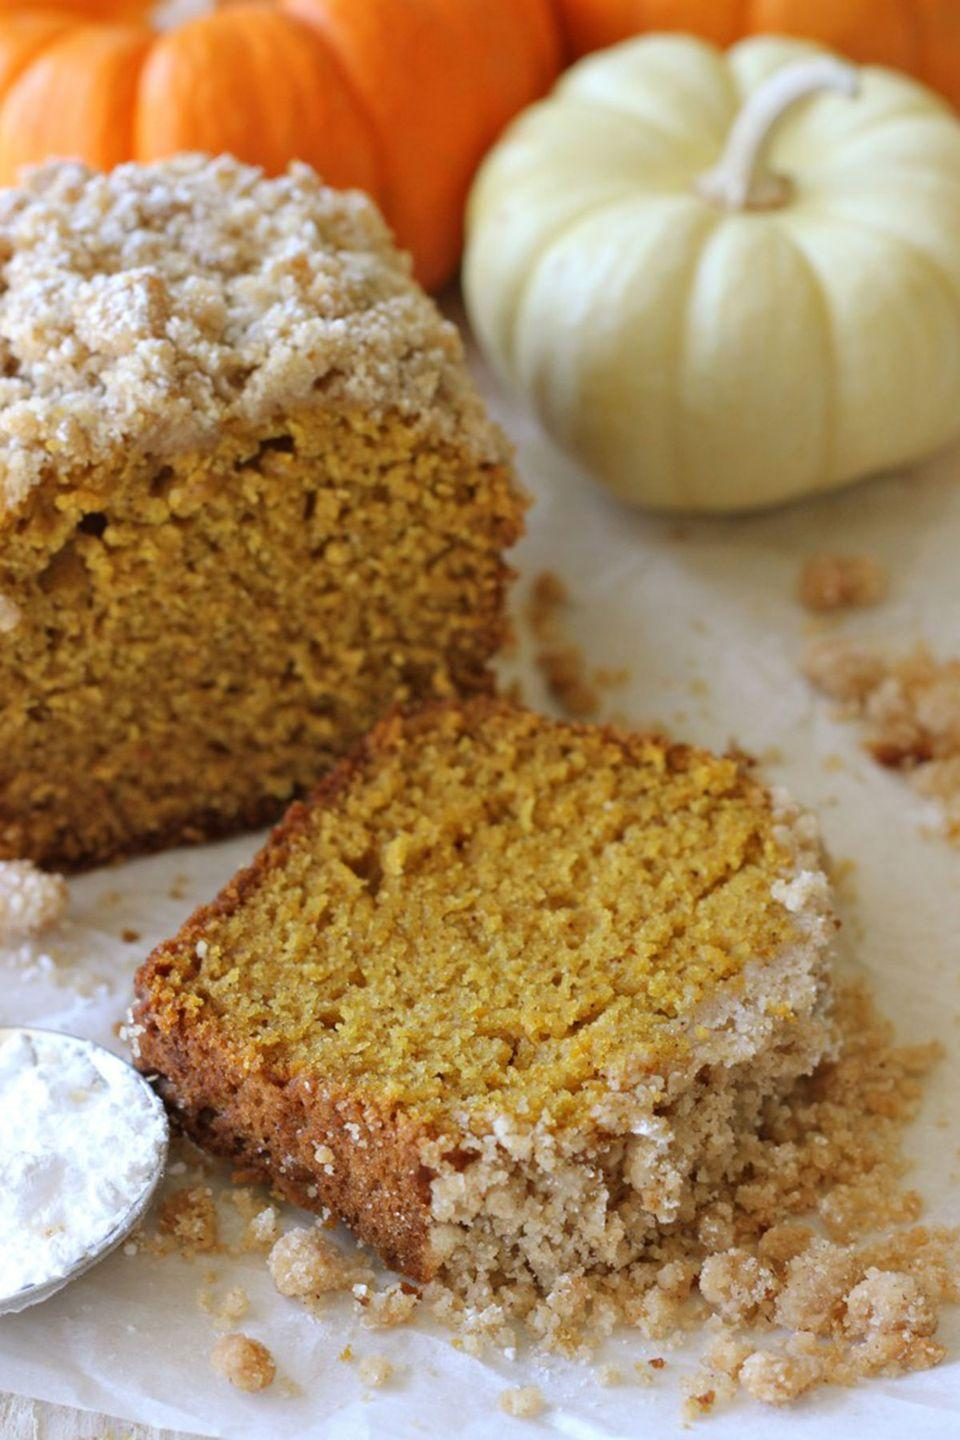 """<p>The crumb topping gives this pumpkin bread an extra kick of sweetness. </p><p><strong>Get the recipe at <a href=""""http://damndelicious.net/2012/11/02/crumbly-pumpkin-bread/"""" rel=""""nofollow noopener"""" target=""""_blank"""" data-ylk=""""slk:Damn Delicious"""" class=""""link rapid-noclick-resp"""">Damn Delicious</a>.</strong></p>"""